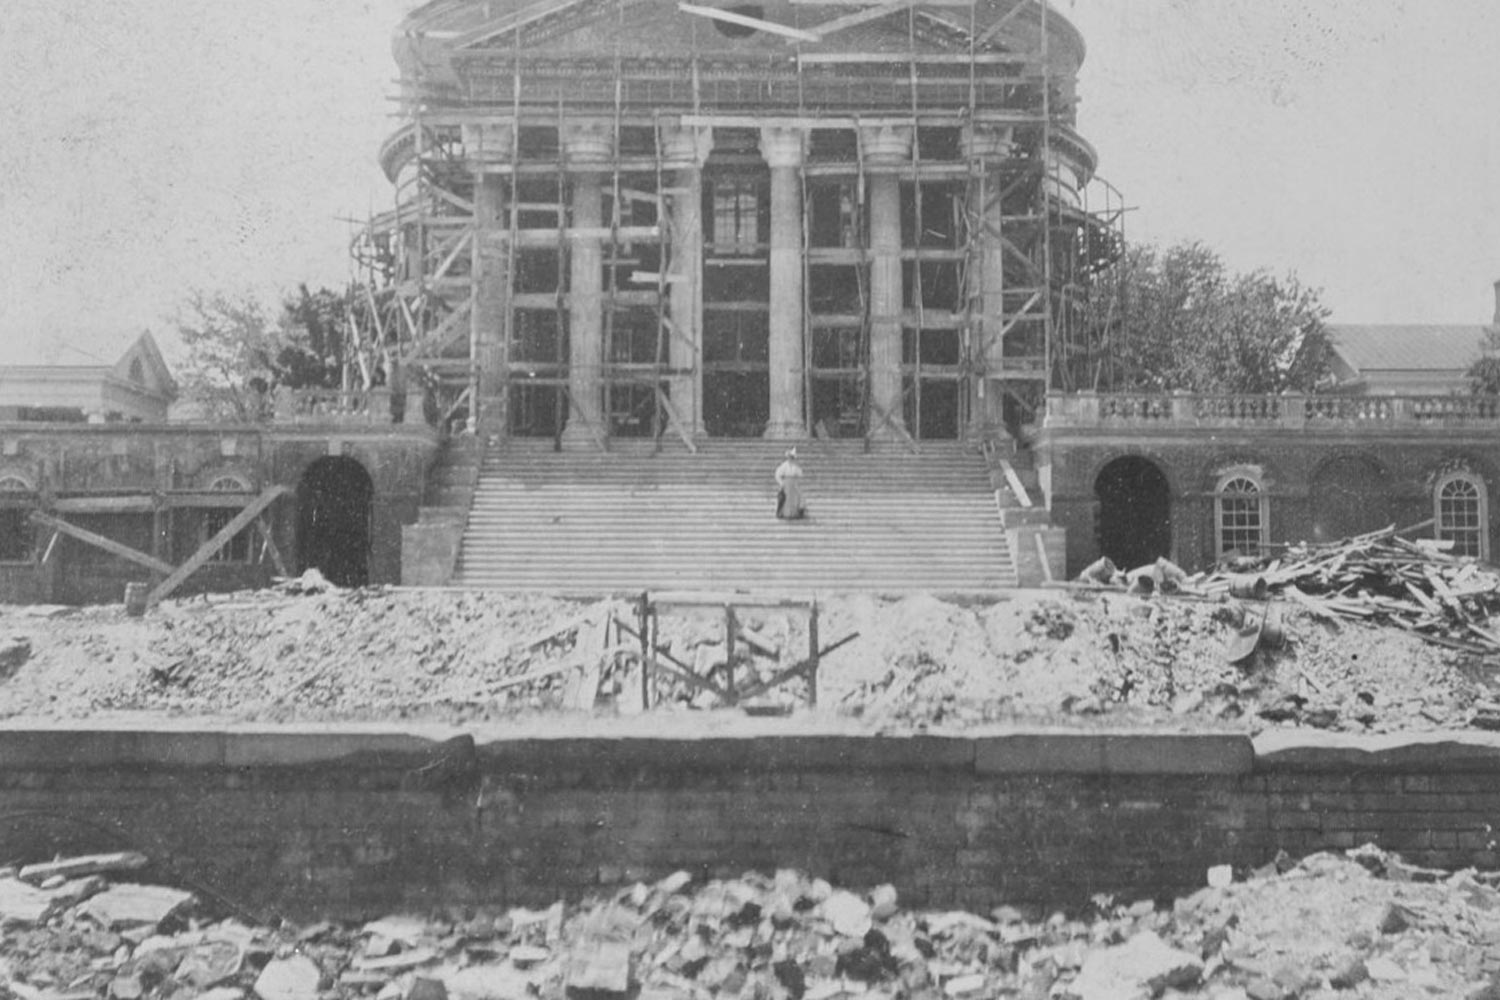 The University rebuilt the Rotunda using plans from famed New York architect Stanford White, who also designed the buildings the enclosed the South Lawn and Carr's Hill, the official residence of the president.